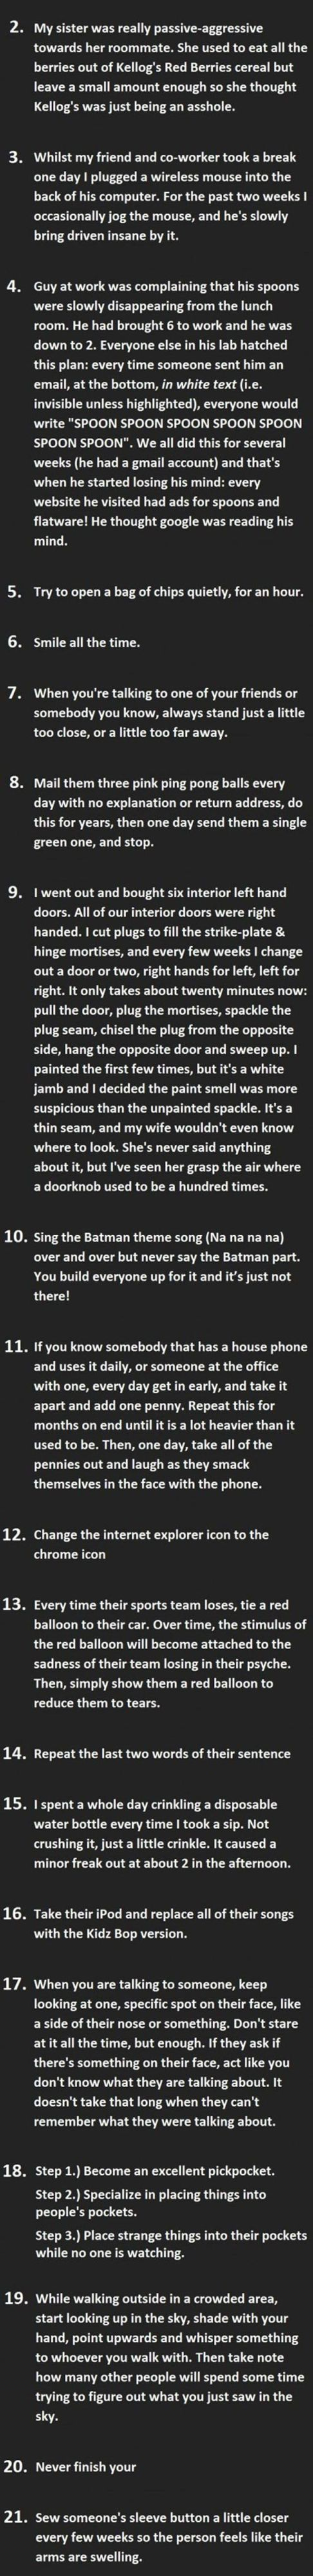 21 Ways To Really Annoy People